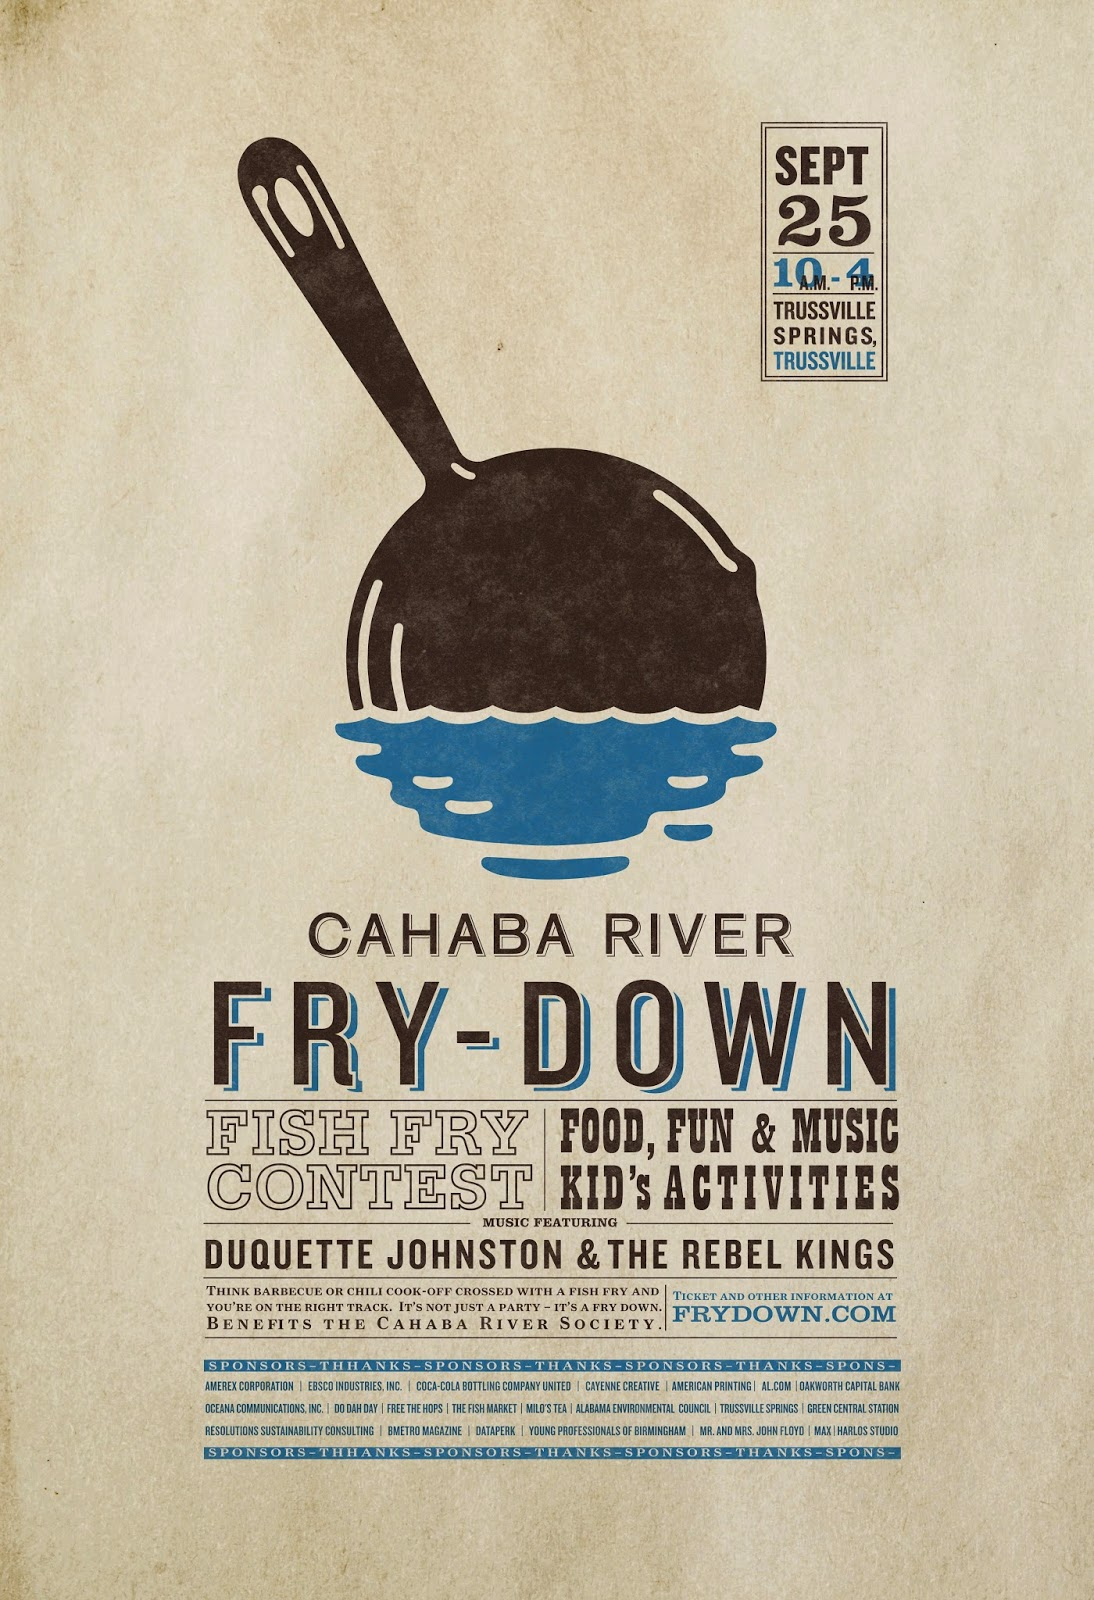 Poster design needed - In The First Poster The Cahaba River Fry Down The Design Is Well Held Together Without Needed To Fill All Of The White Space A Textured Light Colored